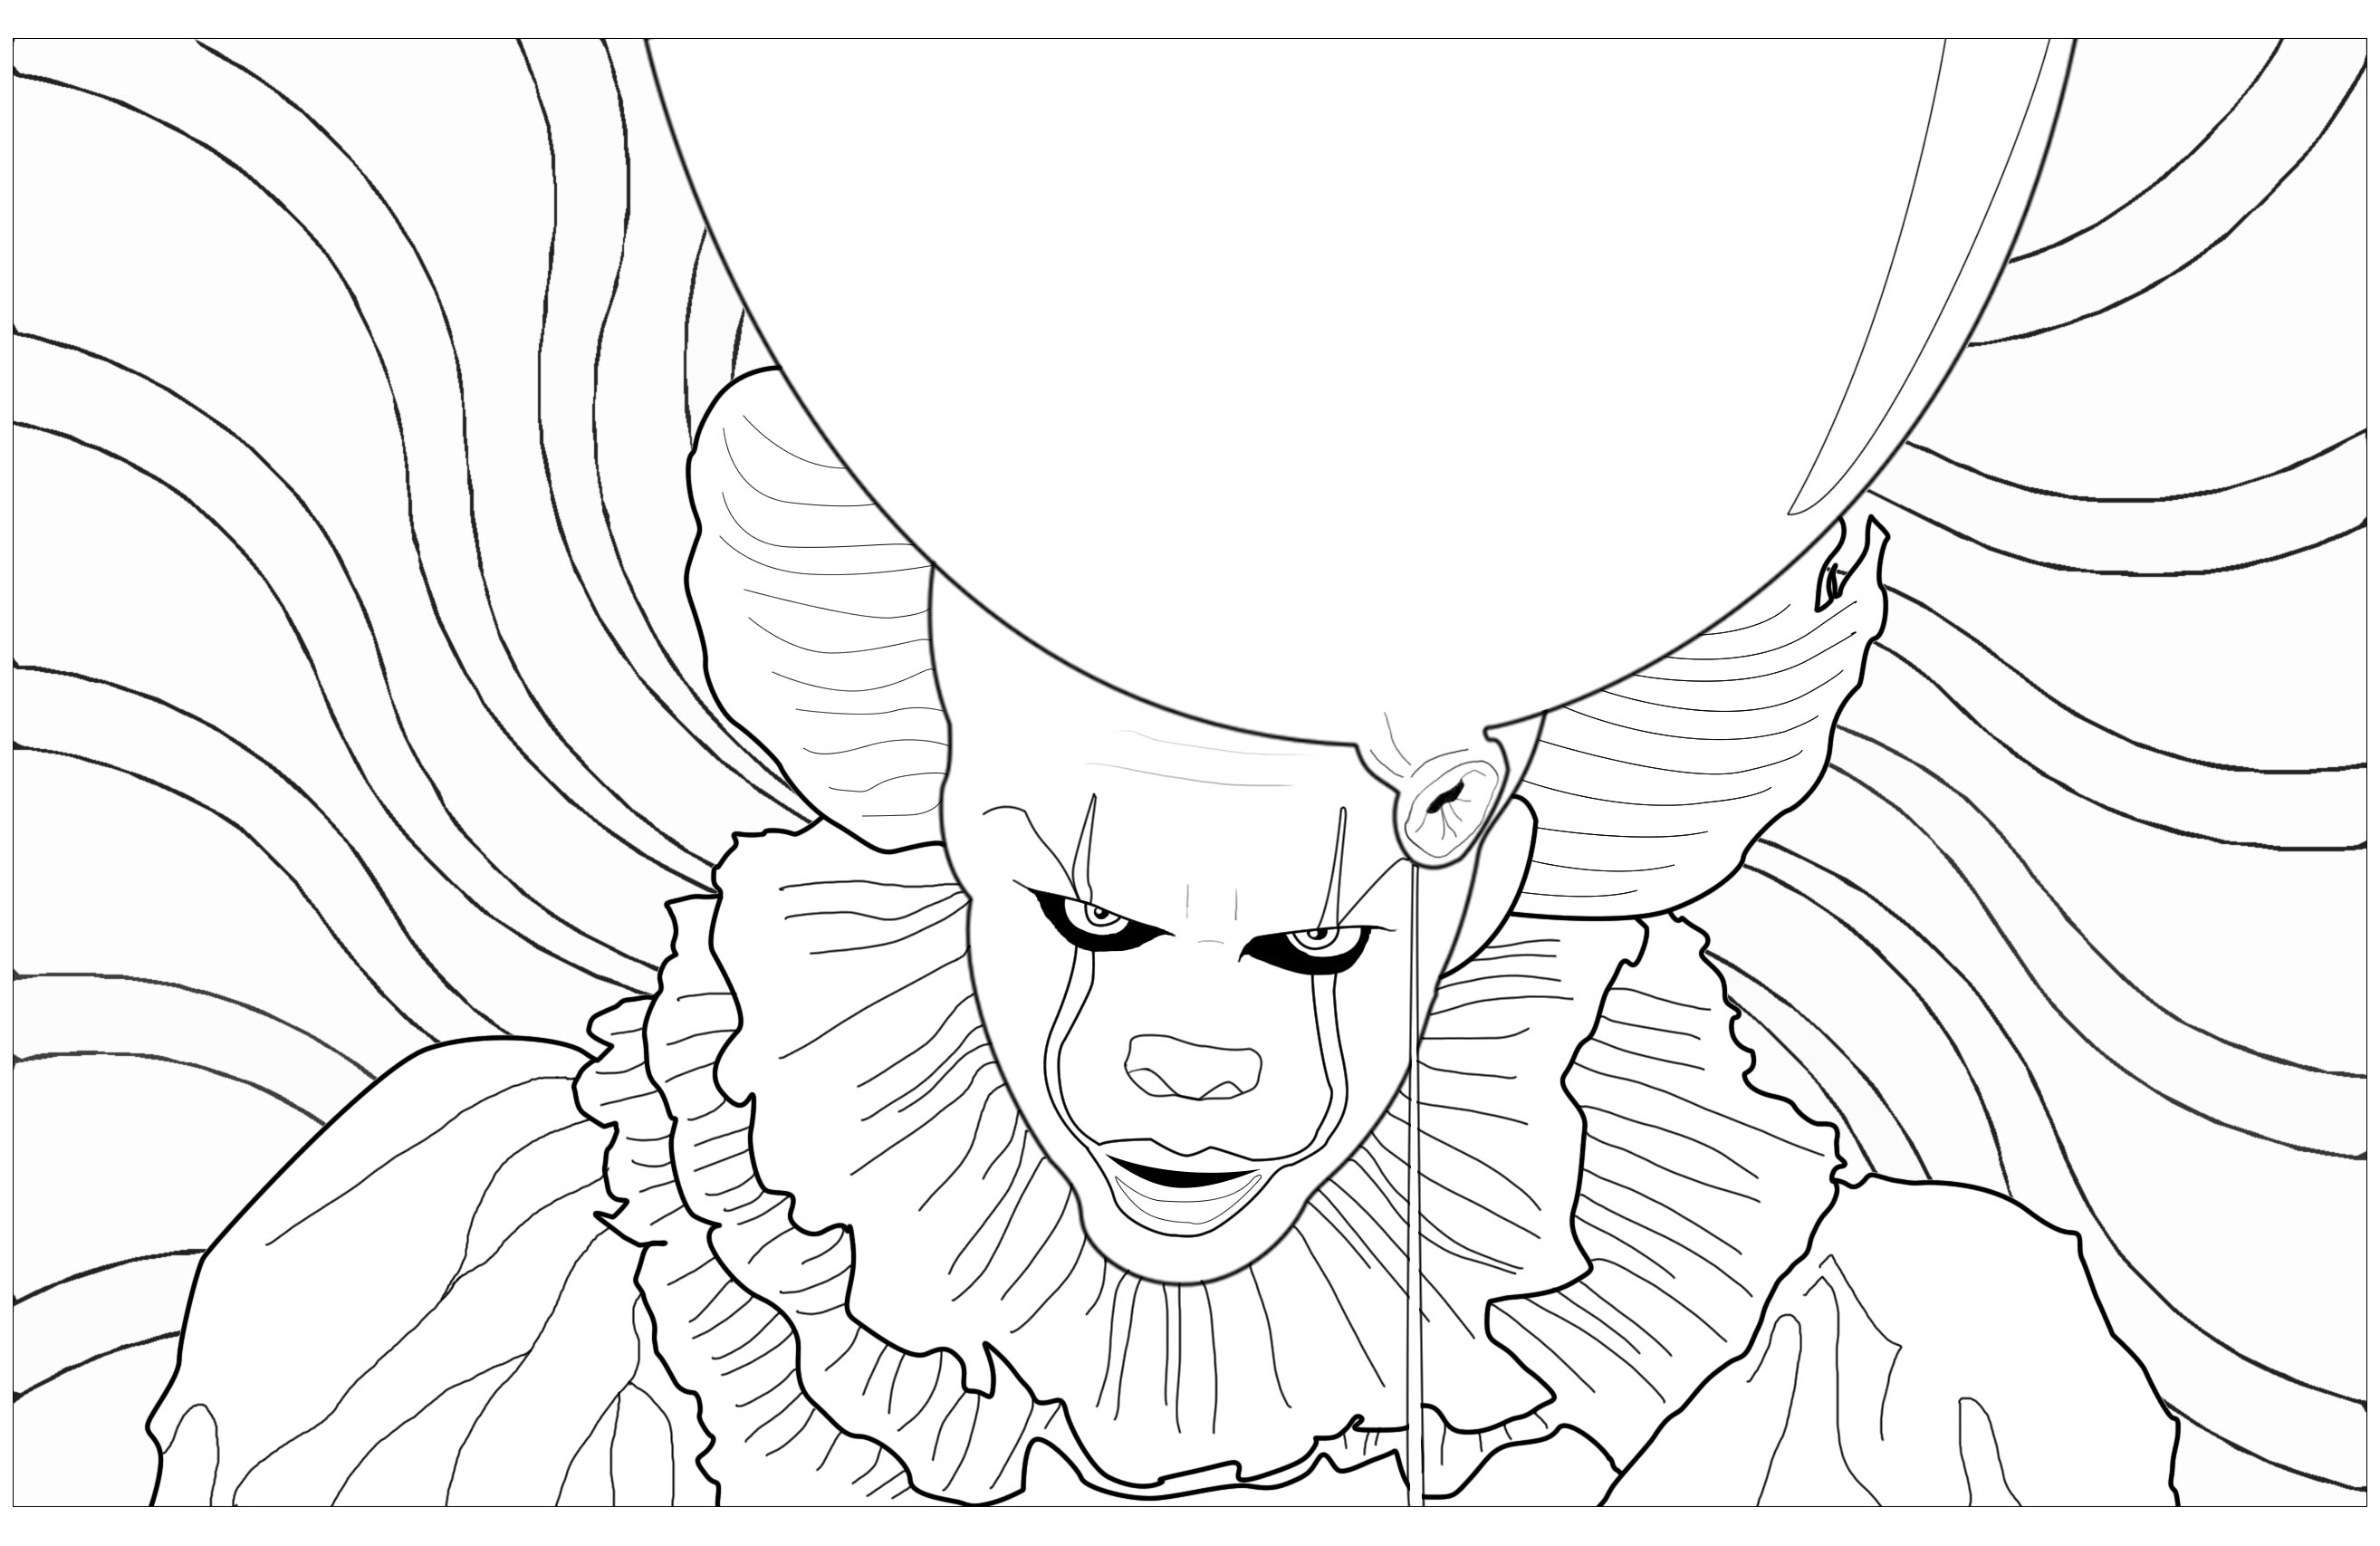 Ca clown pennywise psychedelic background - Halloween Adult Coloring ...